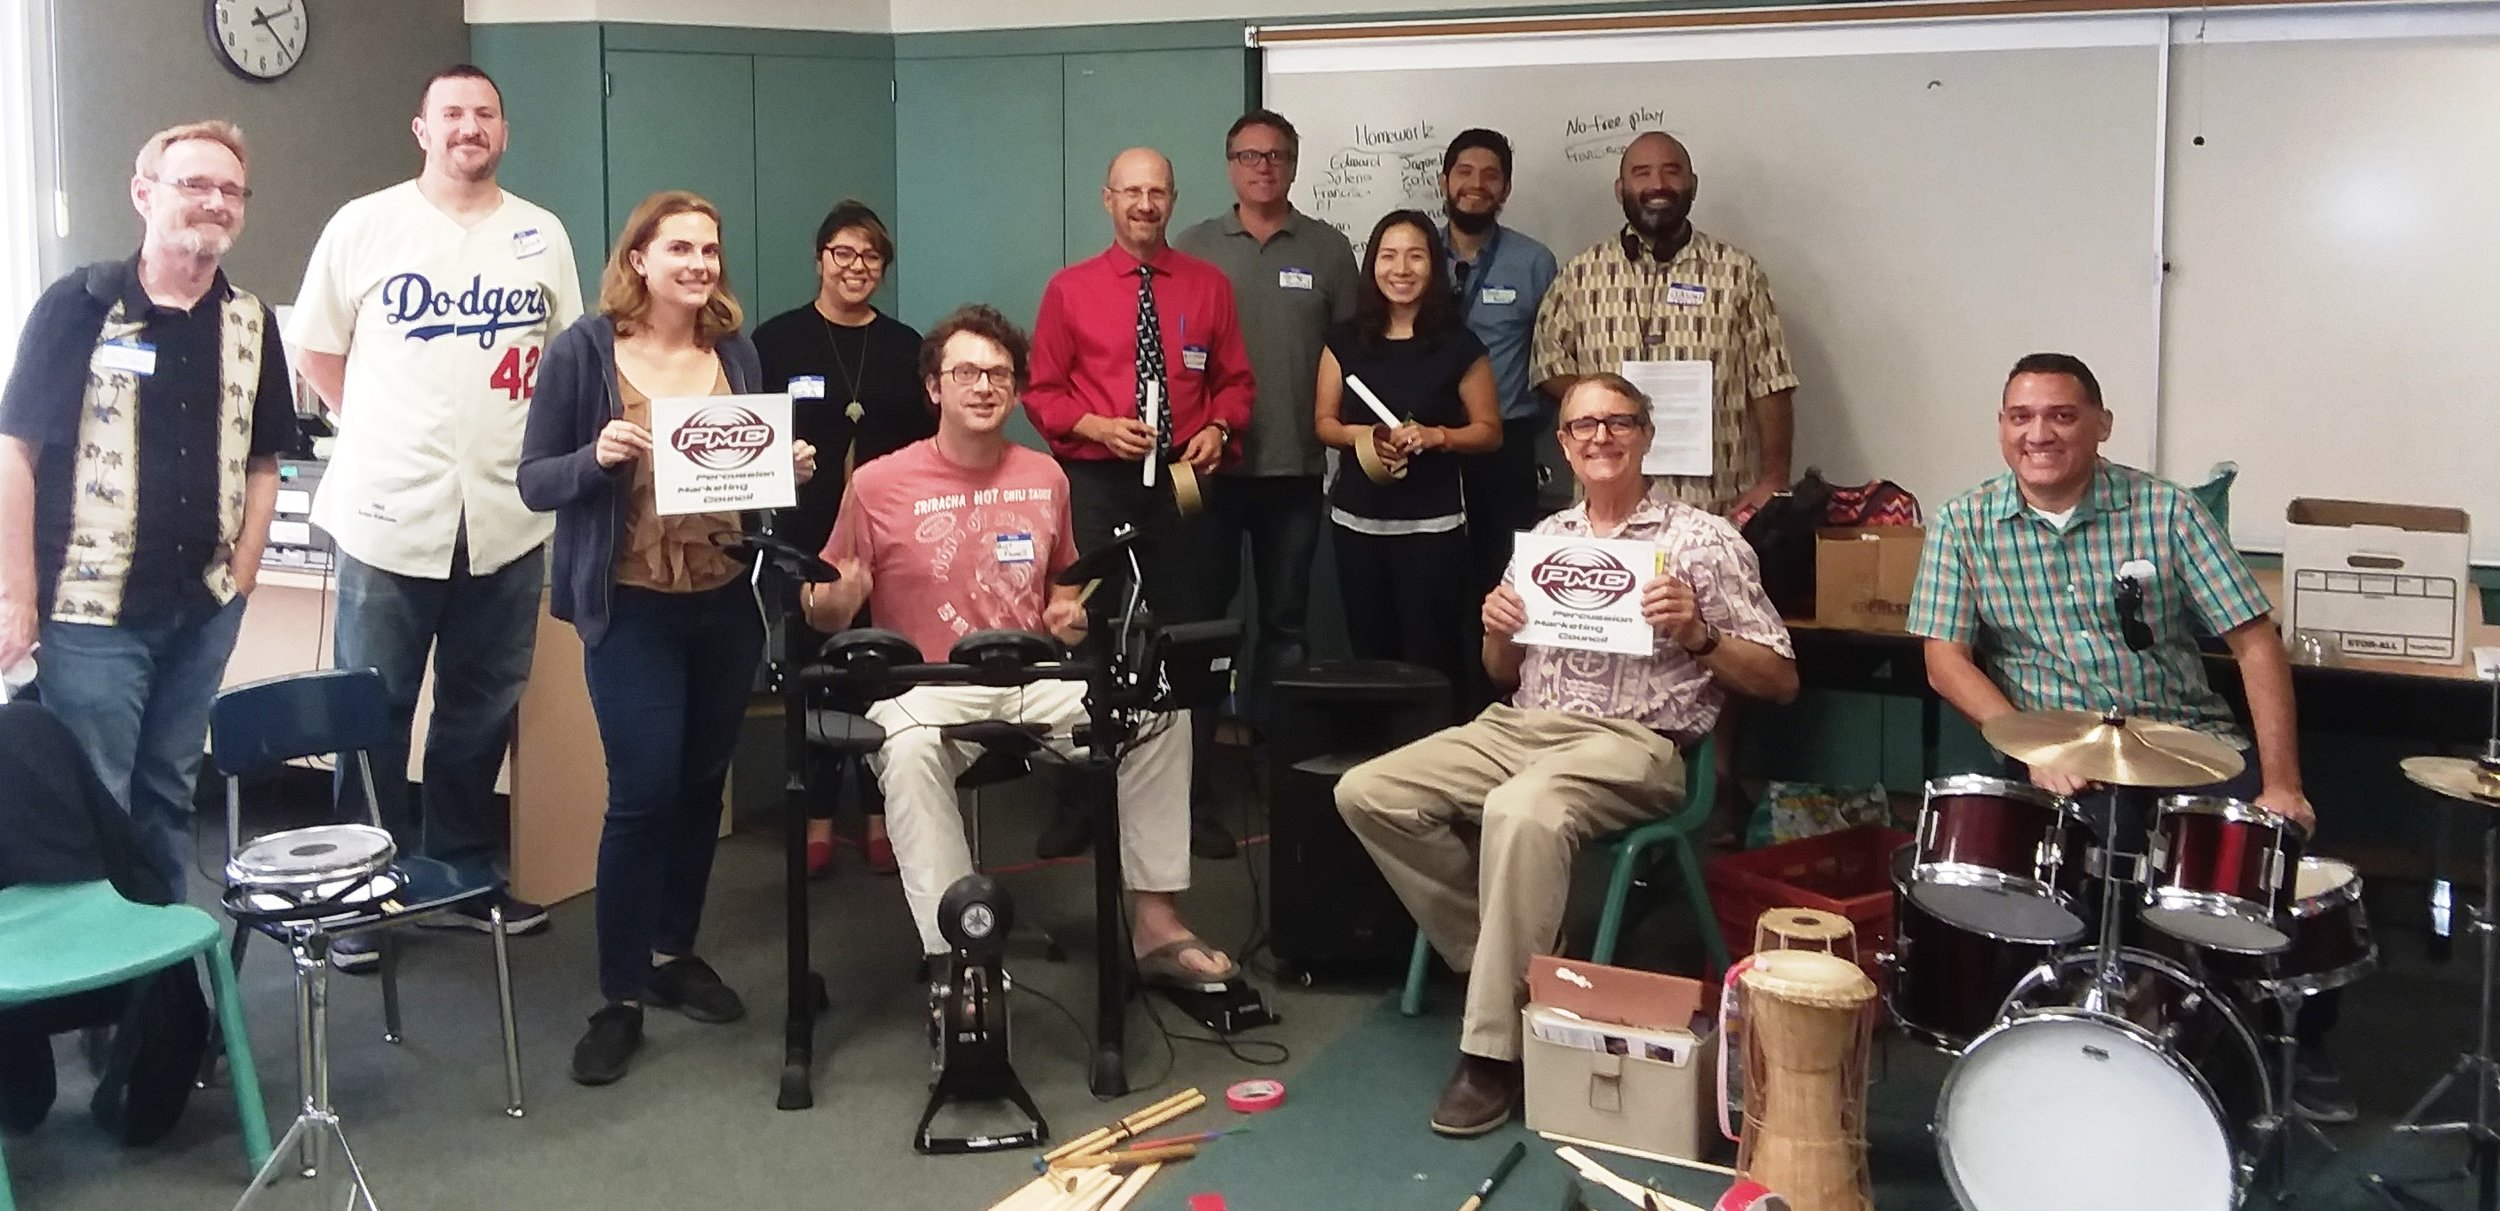 02 Music Teachers LA DSC 10.2017.jpg